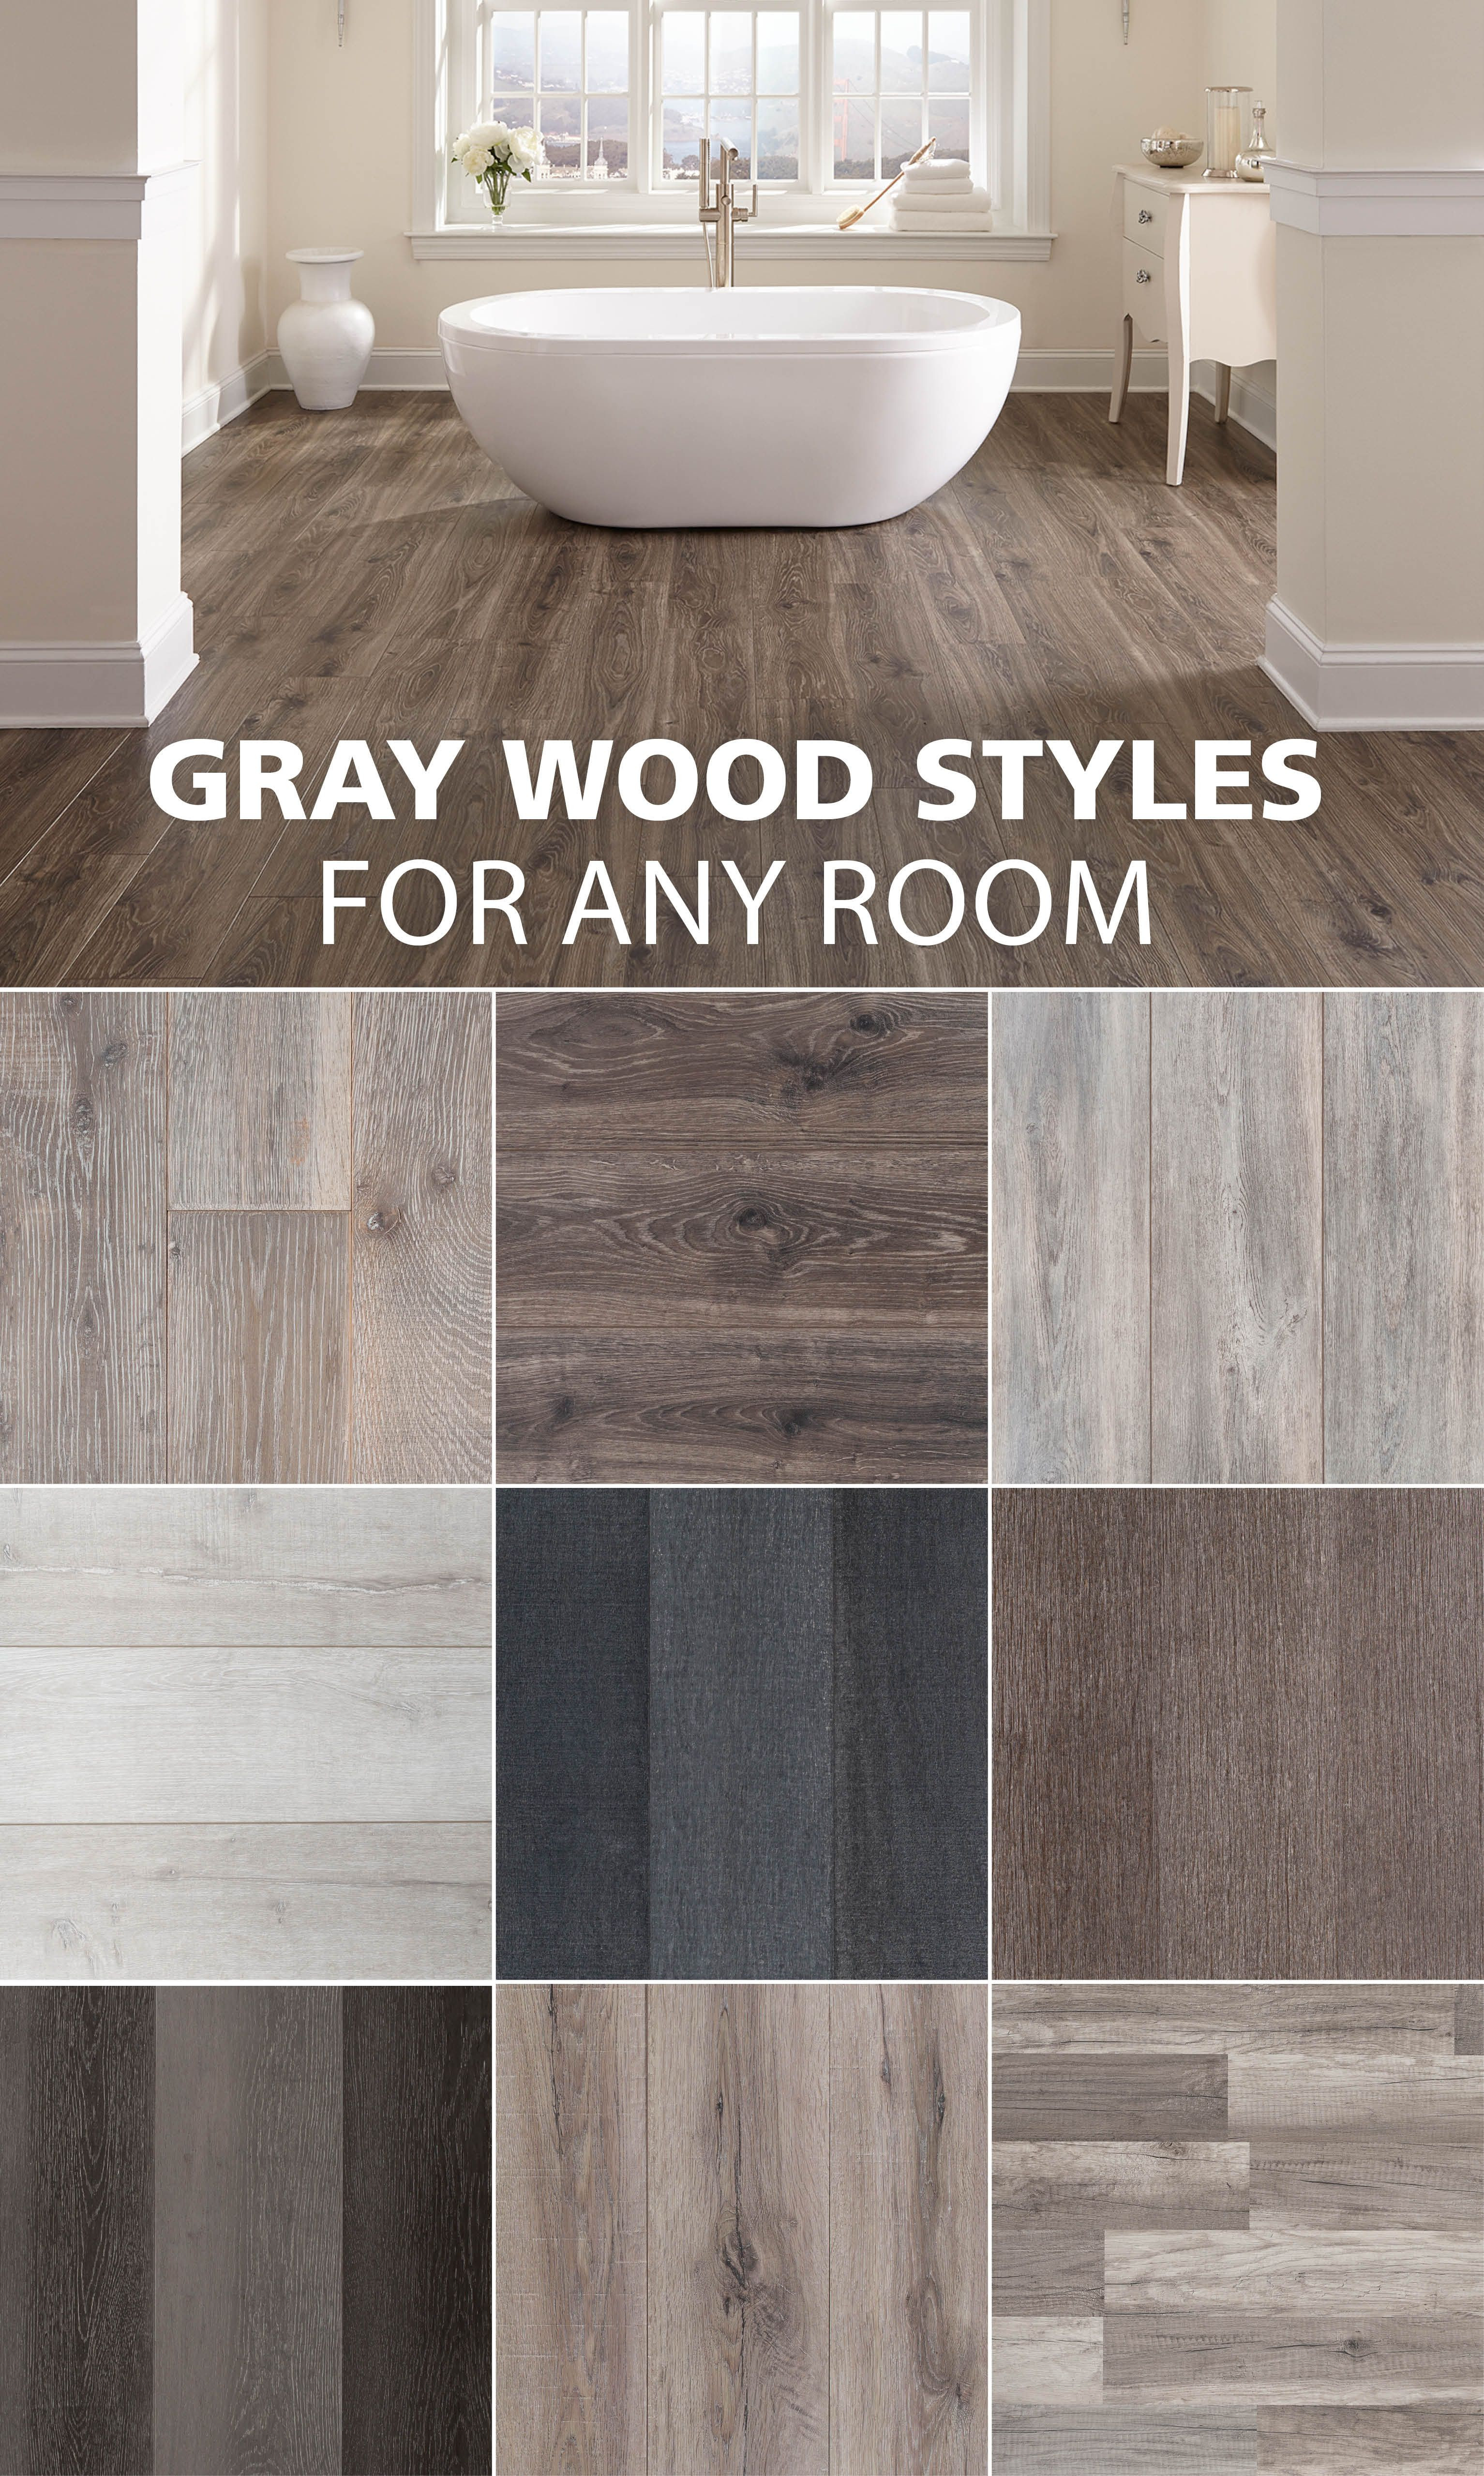 best hardwood floor finish for kitchen of here are some of our favorite gray wood look styles home decor intended for here are some of our favorite gray wood look styles